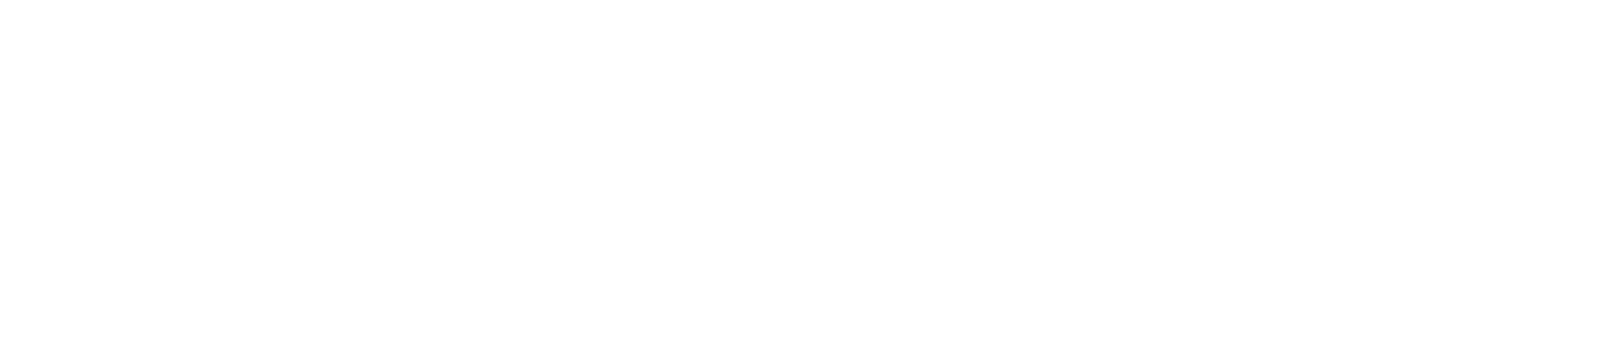 converge_logo-white-1.png